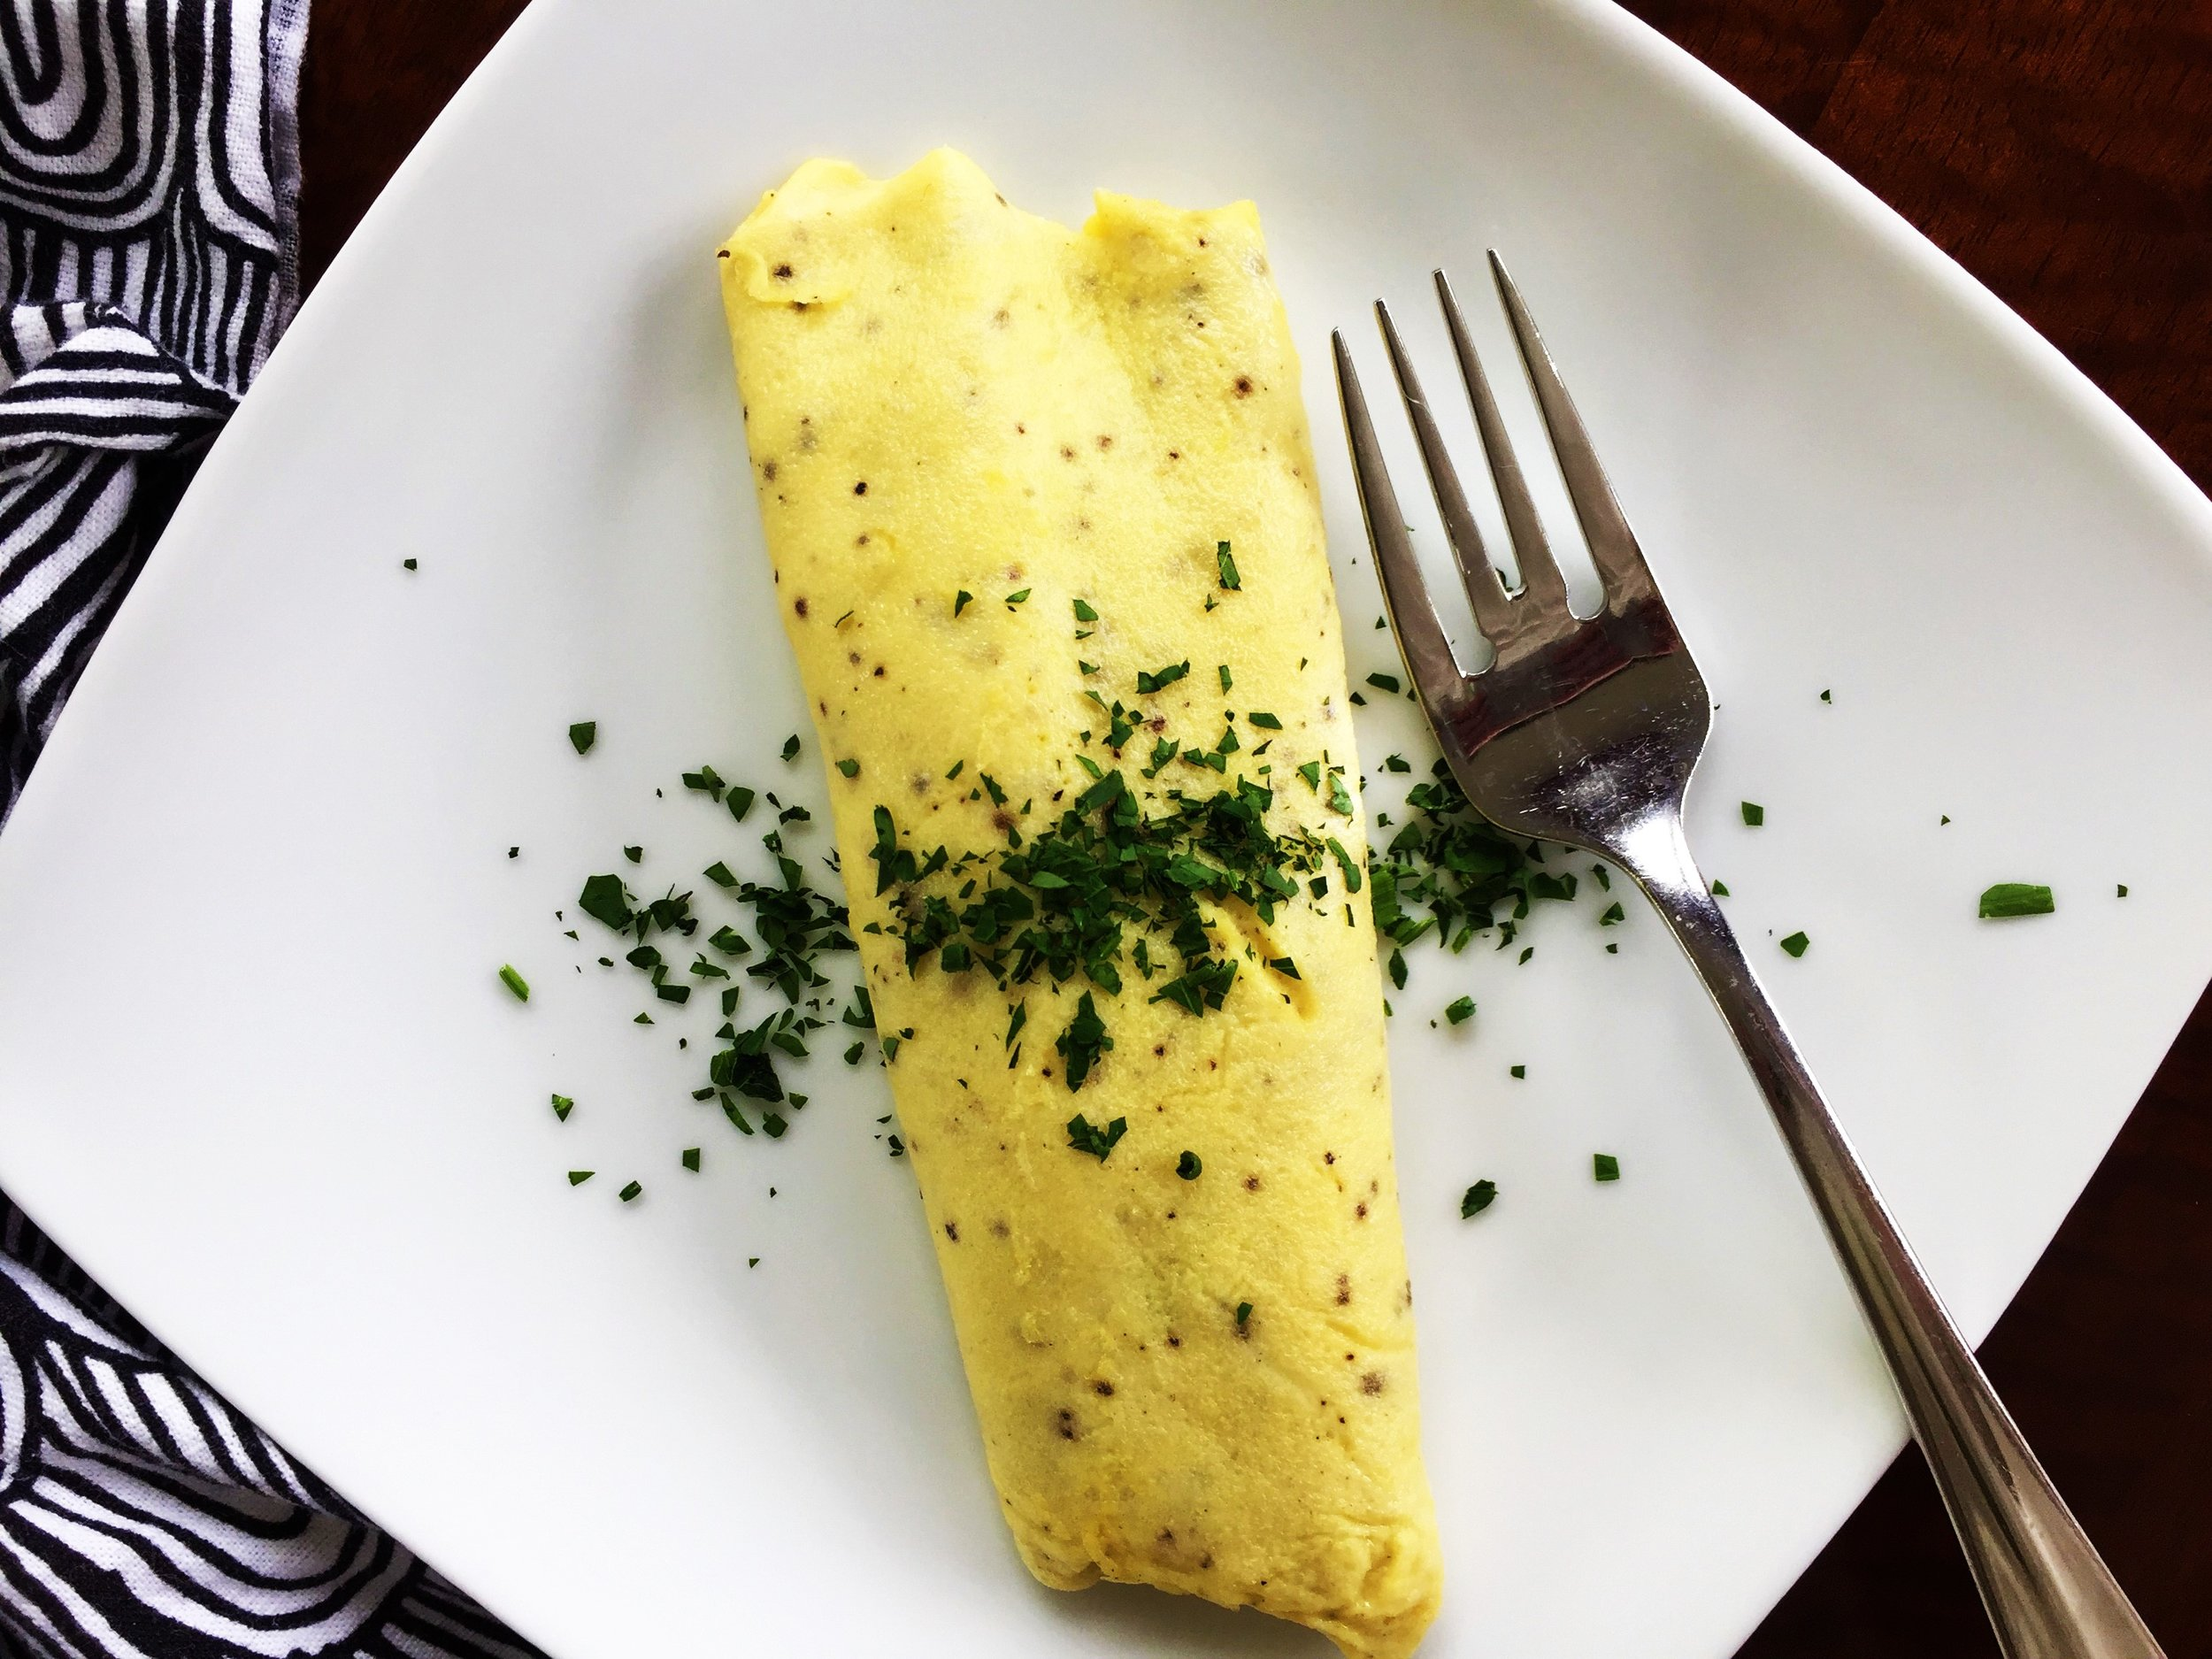 The perfect omelette